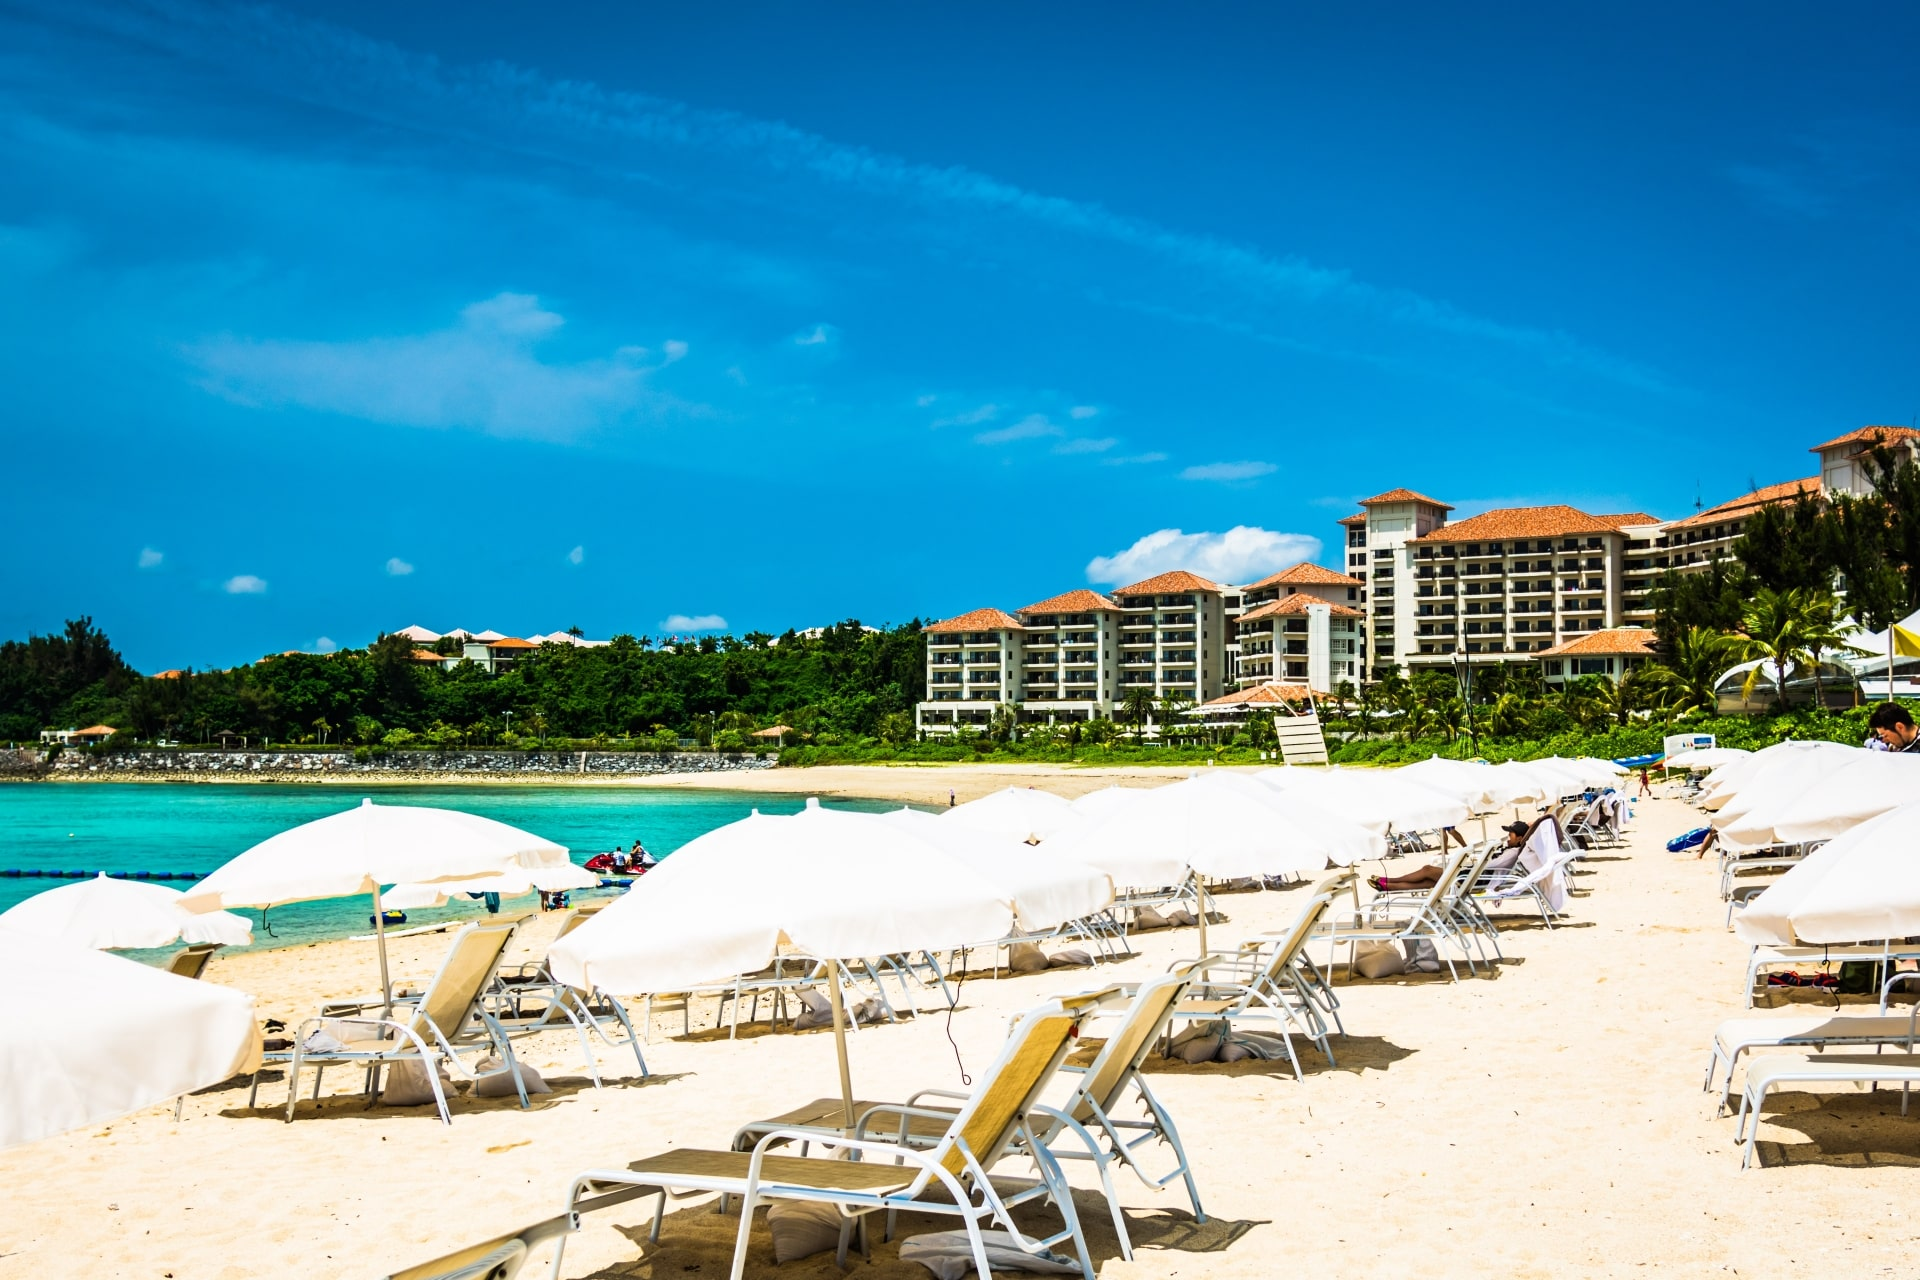 Beach resort in Okinawa